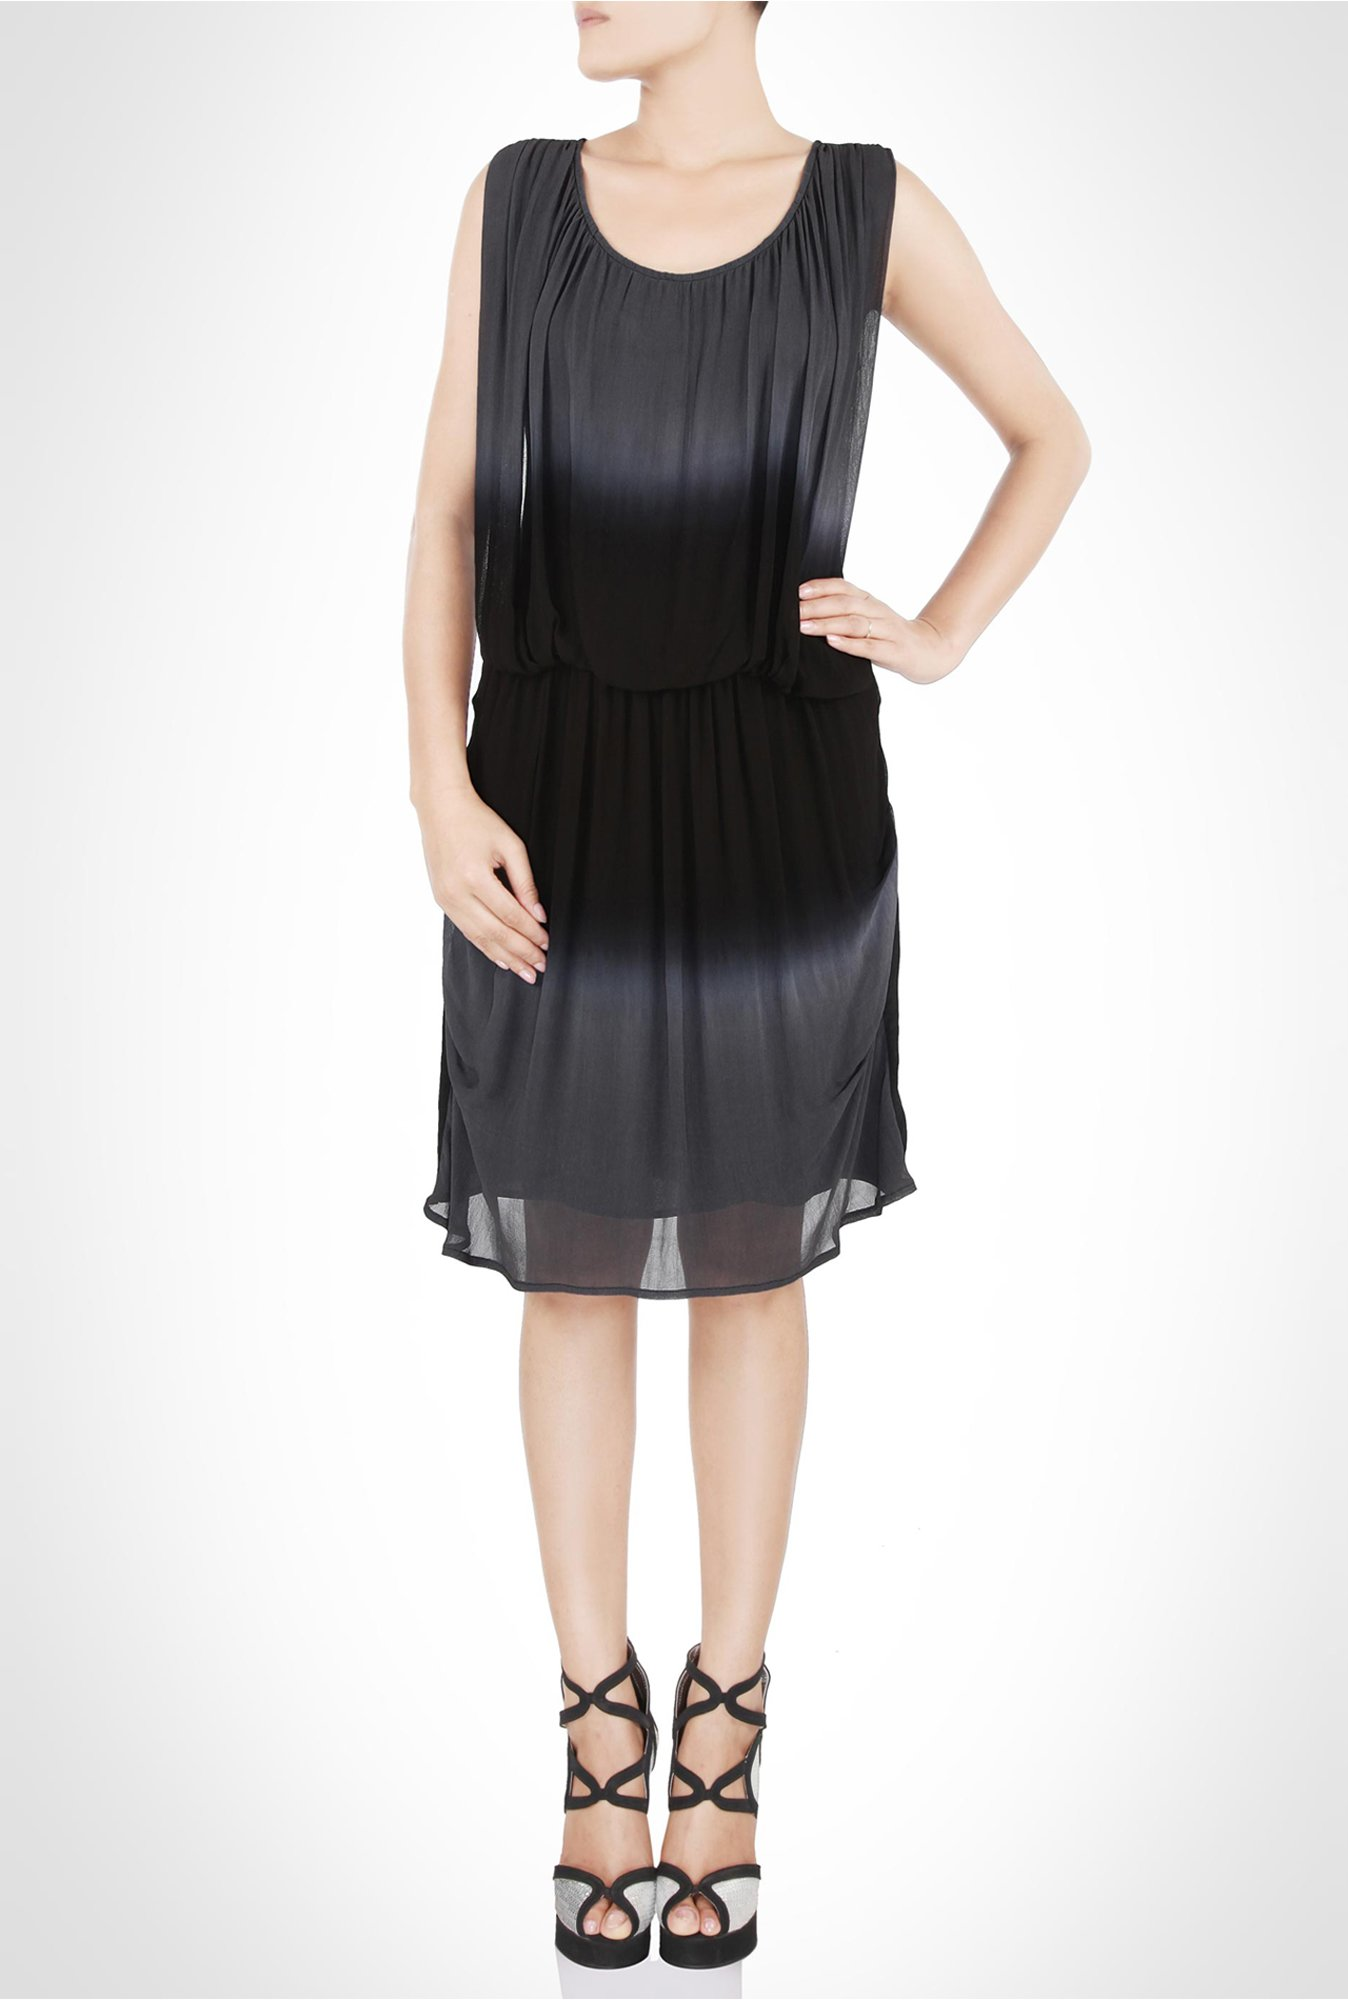 Rinku Dalmal Designer Wear Black Ombre Dress by Kimaya